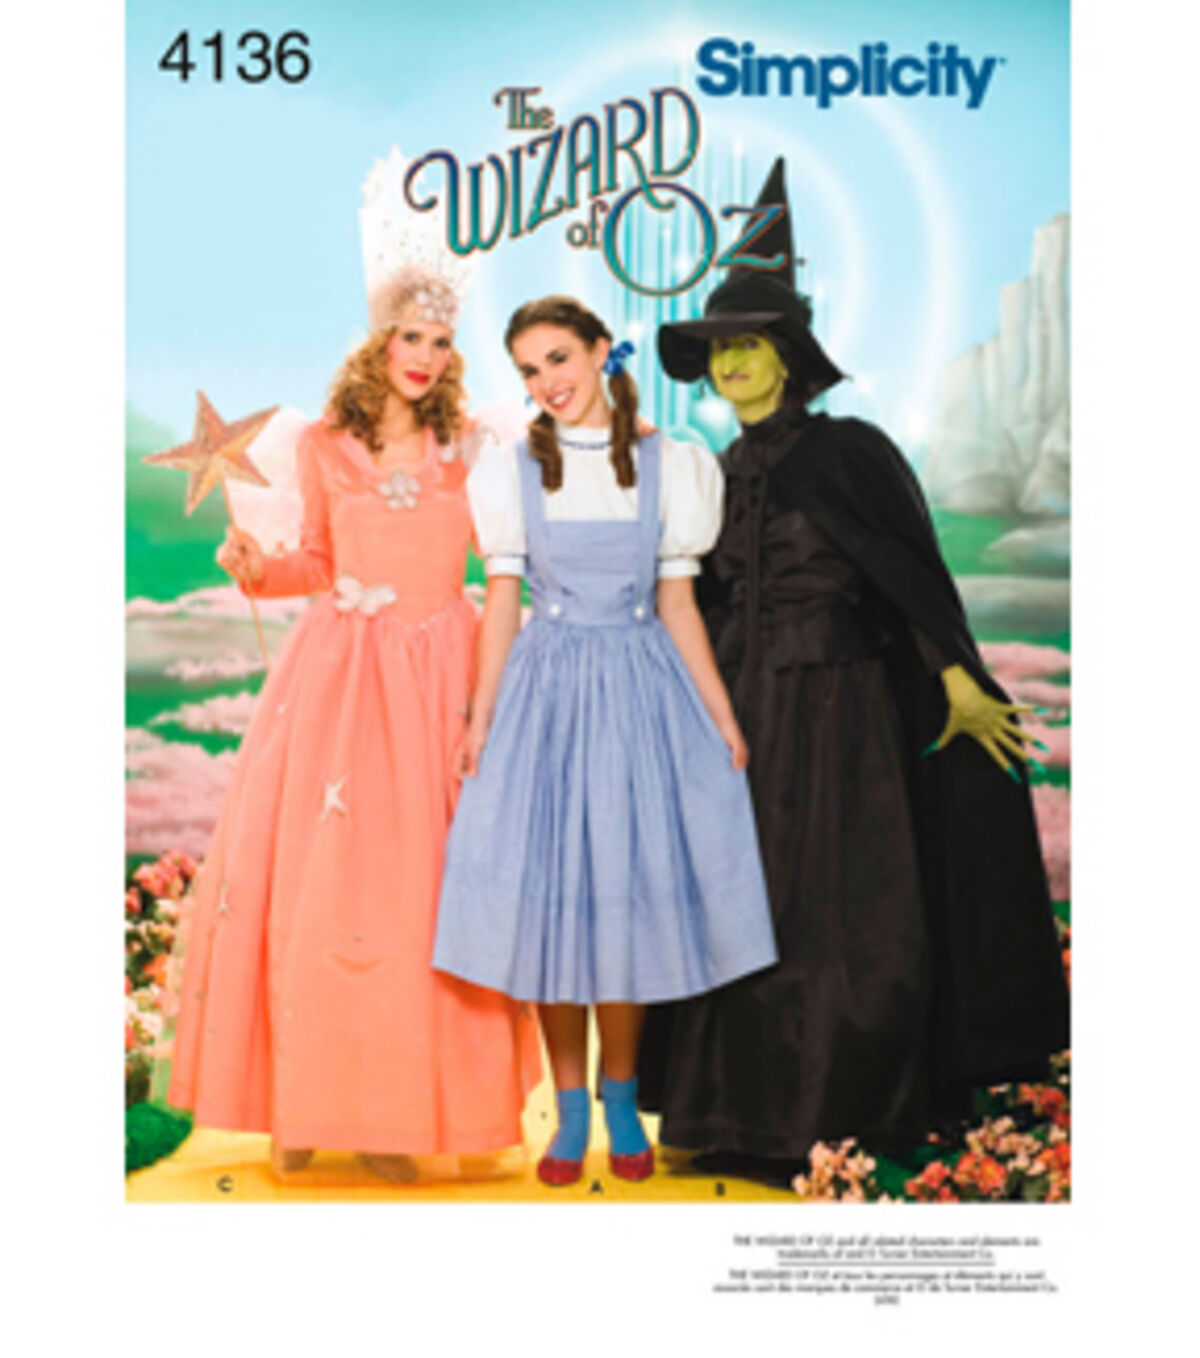 1940s Sewing Patterns – Dresses, Overalls, Lingerie etc Simplicity Pattern 4136 - Misses The Wizard of Oz Costumes - Sizes 6-8-10-12 $15.95 AT vintagedancer.com